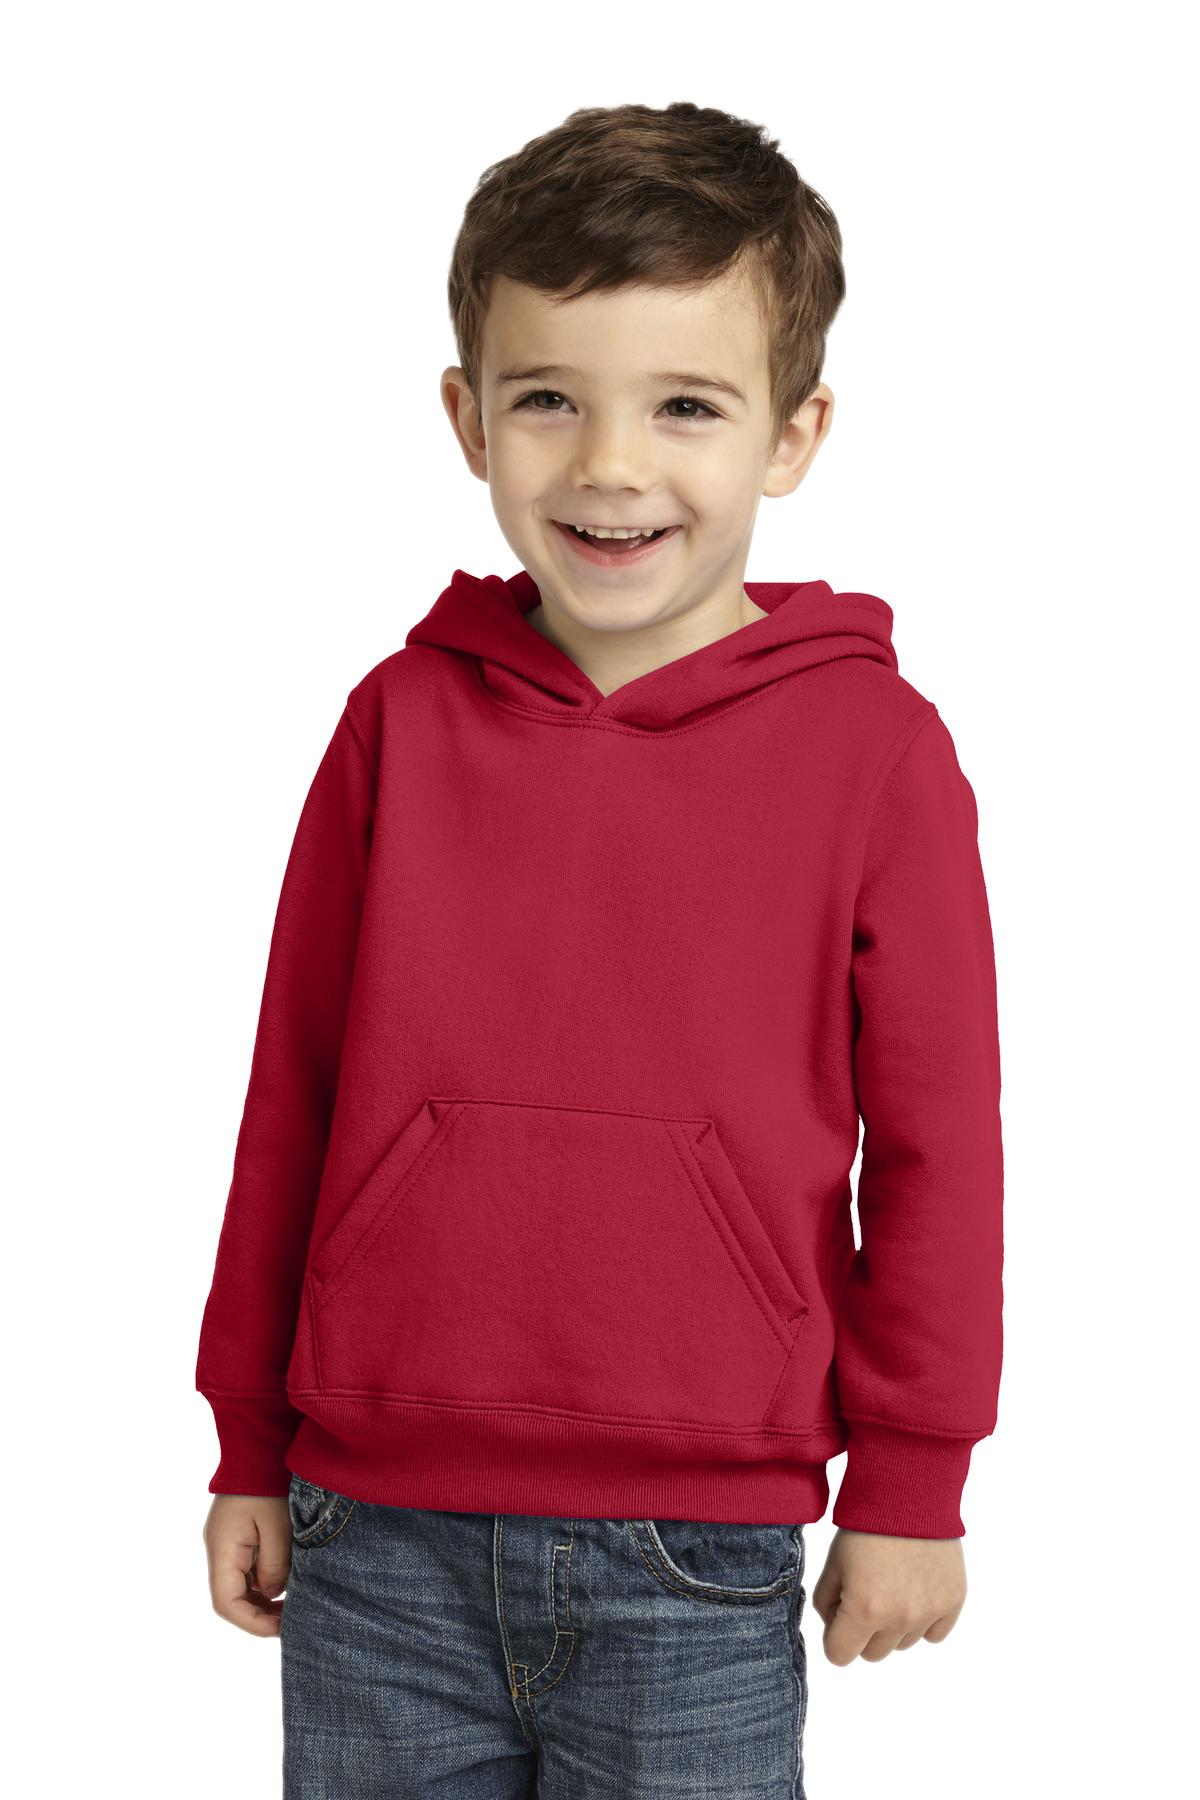 Port & Company ®  Toddler Core Fleece Pullover Hooded Sweatshirt. CAR78TH - Red